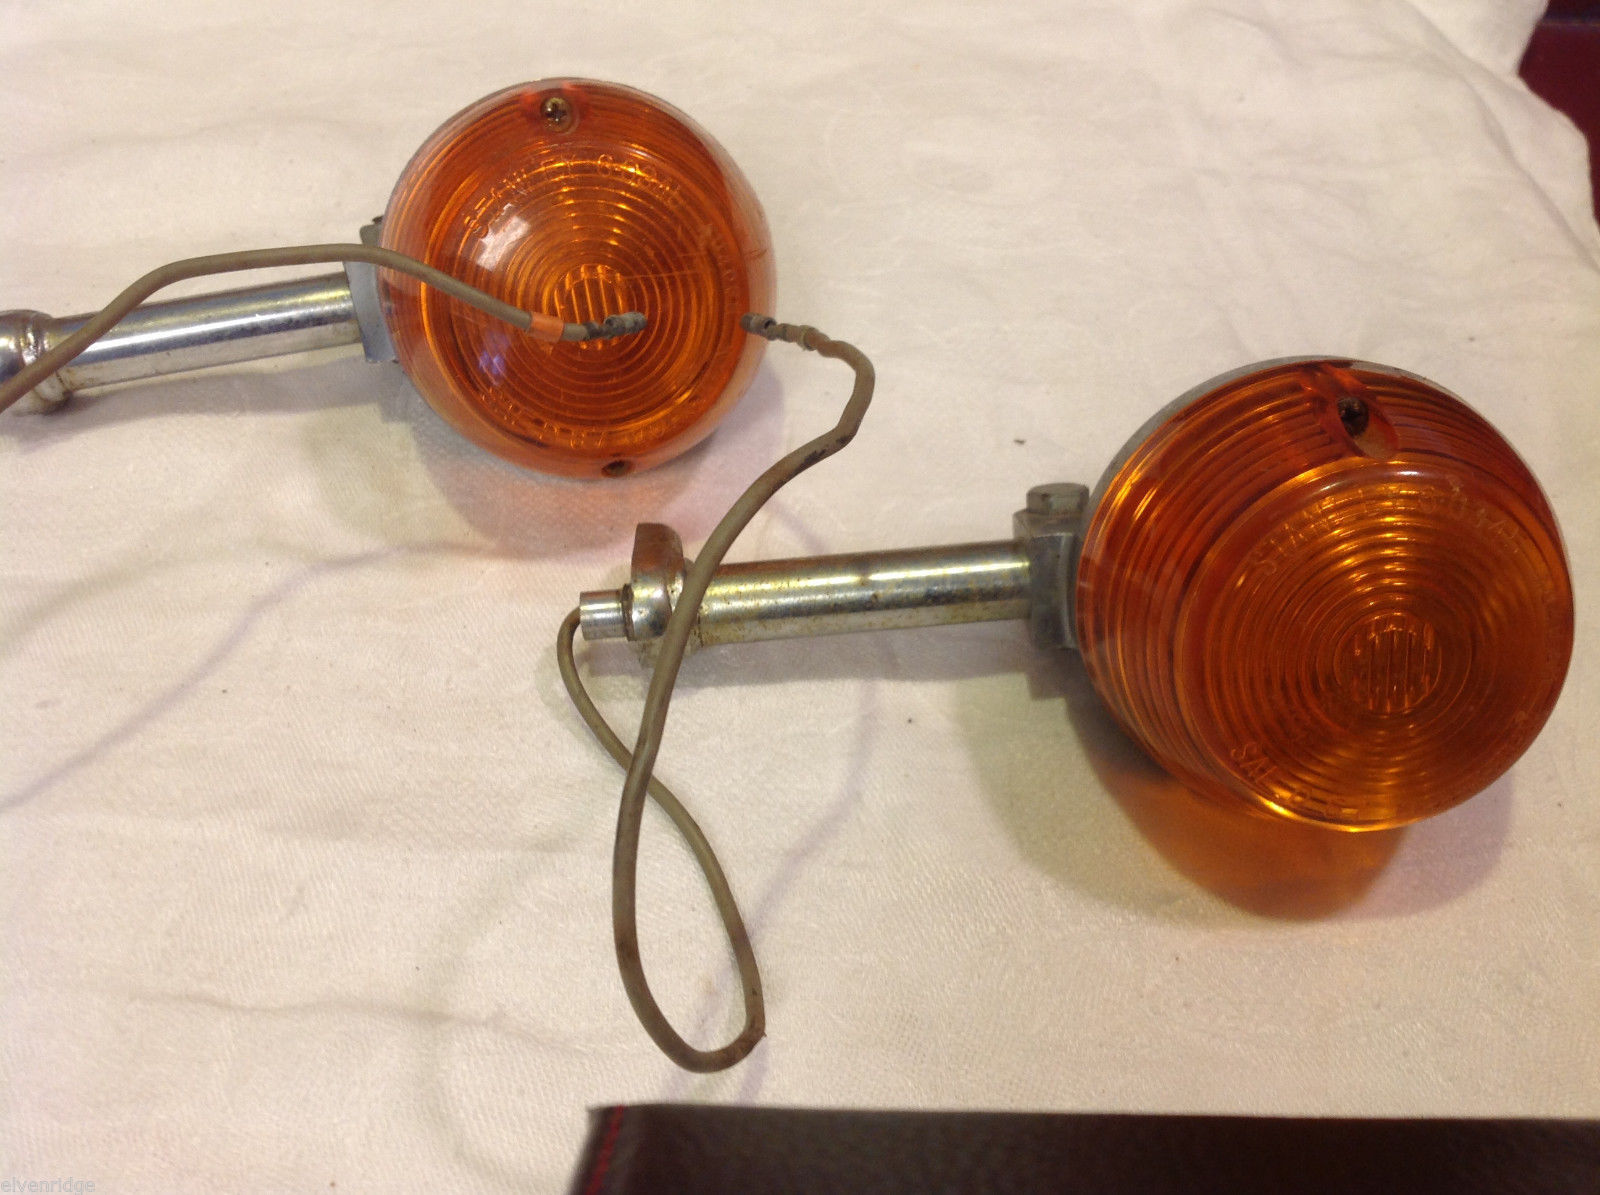 Stanley made Japan SAE D67 S0345 two lights unidentified vehicle repurposing